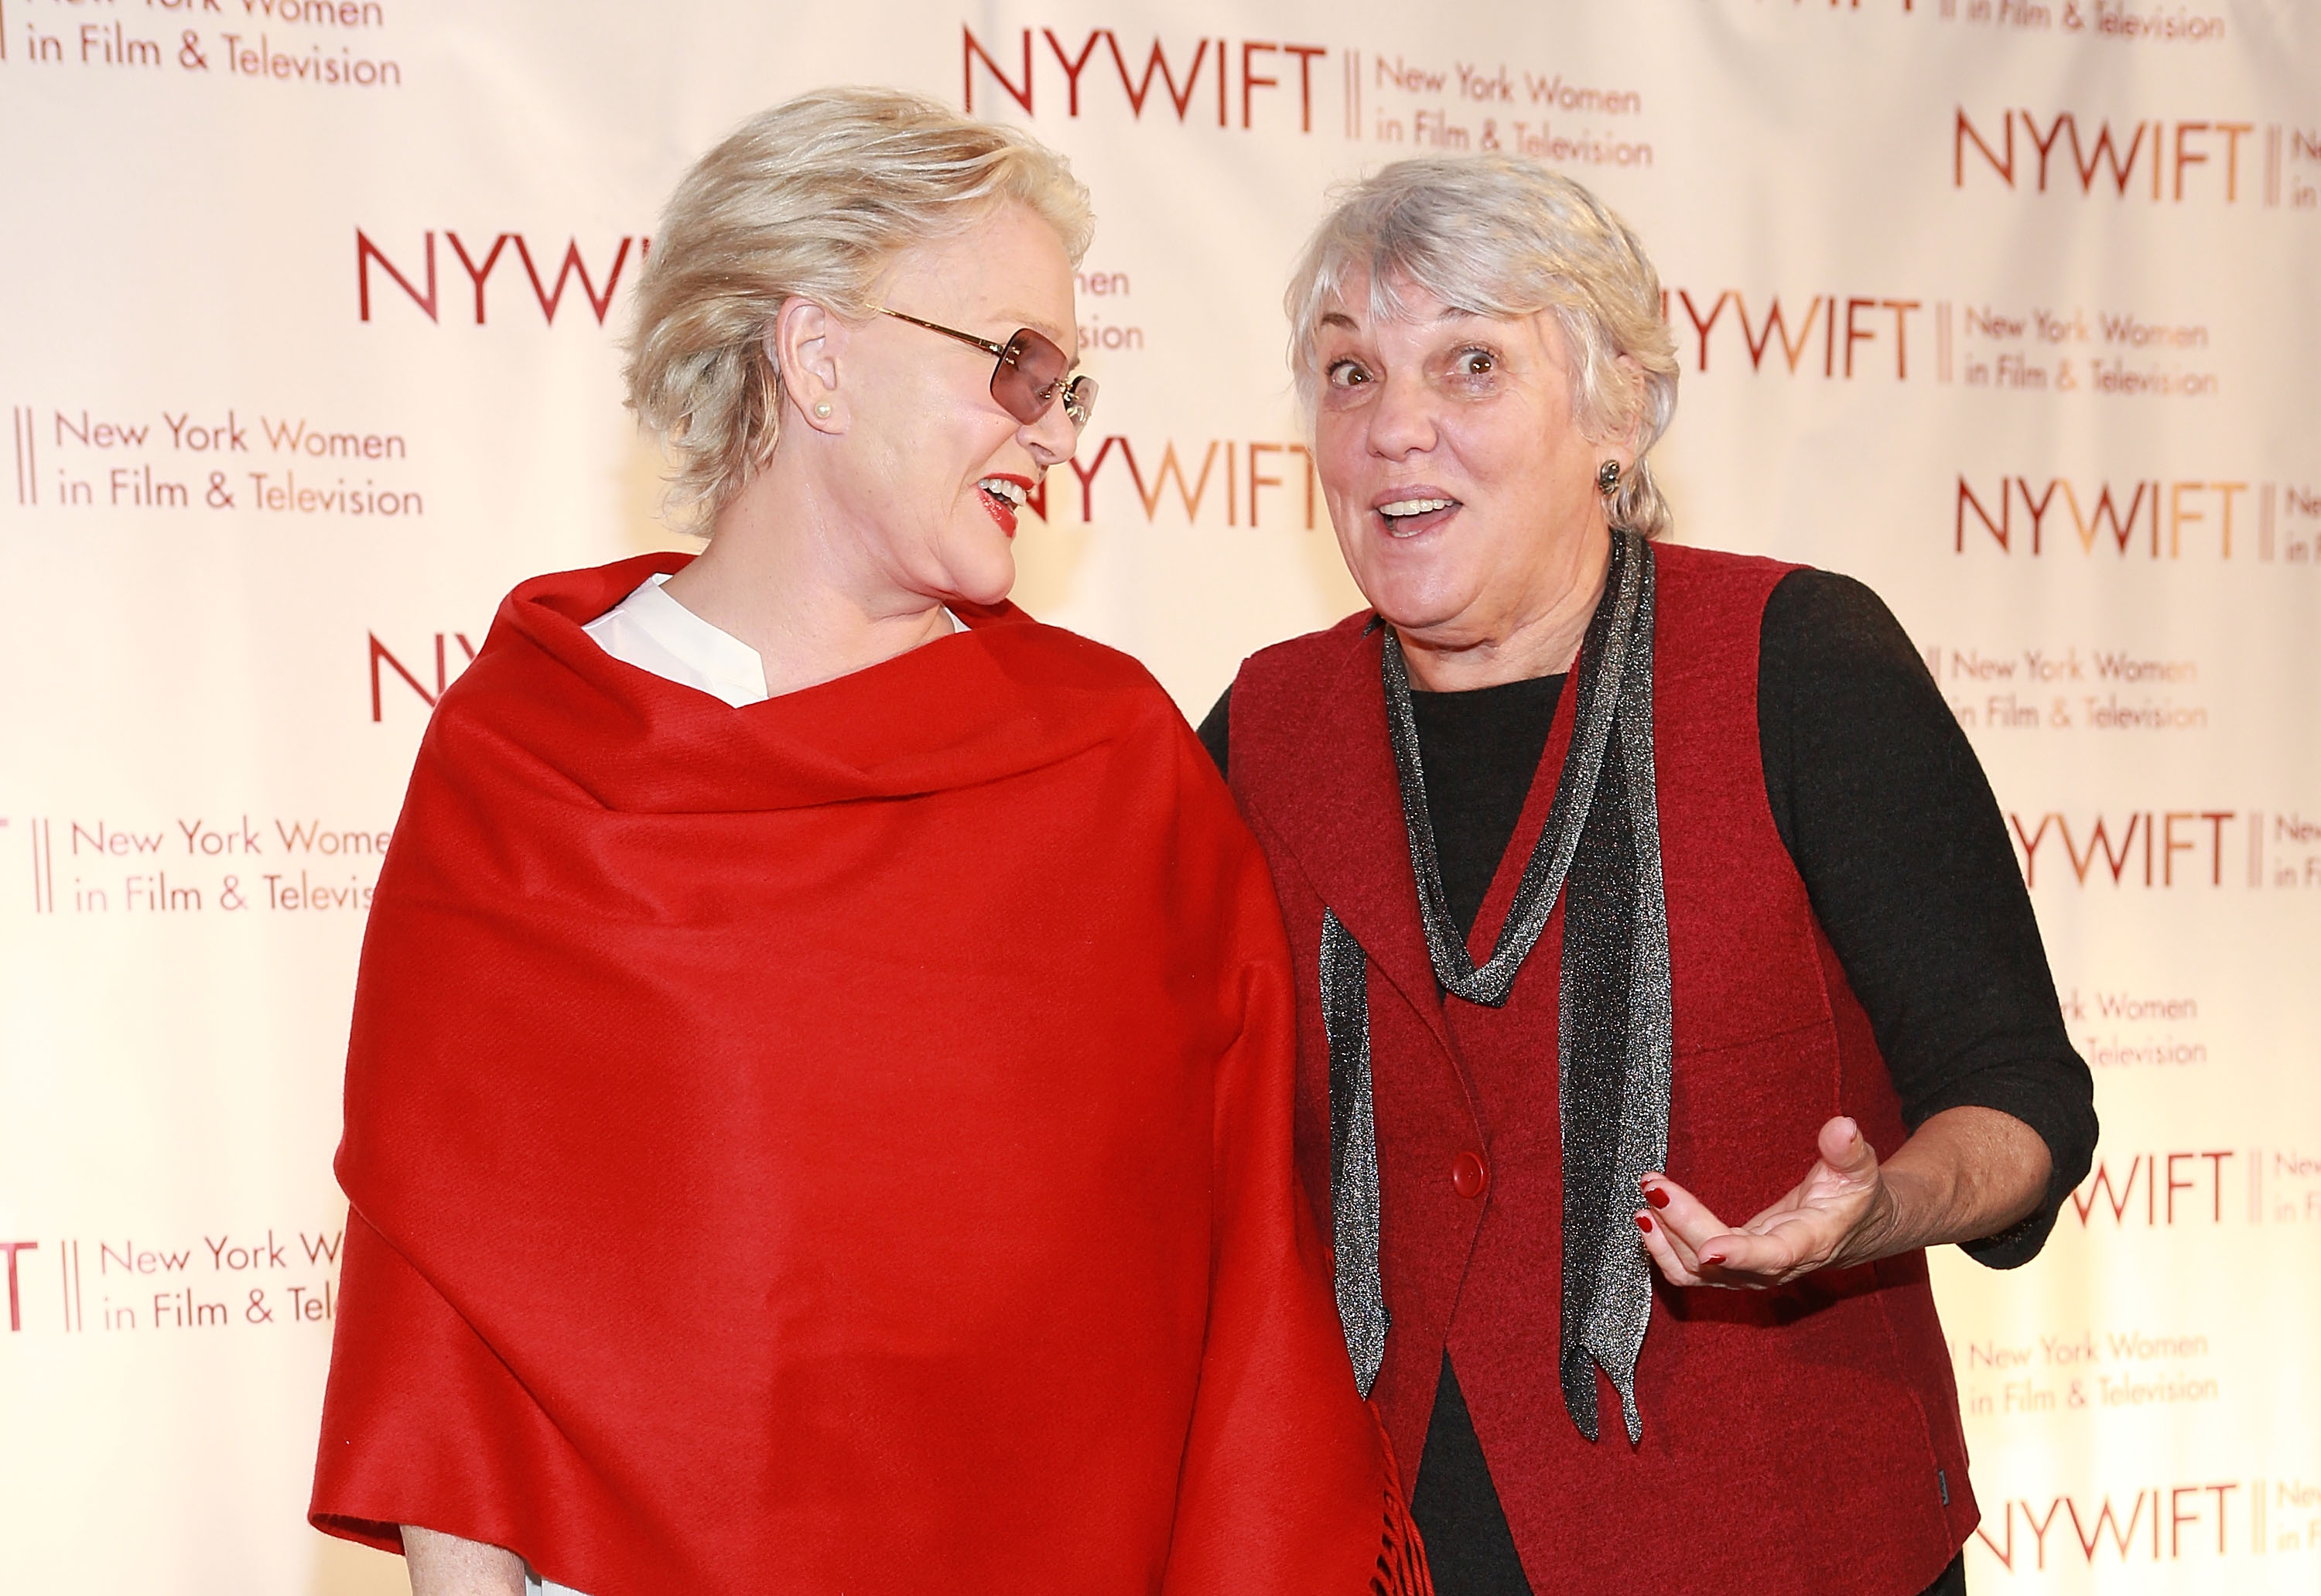 Sharon Gless with Cagney & Lacey co-star Tyne Daly